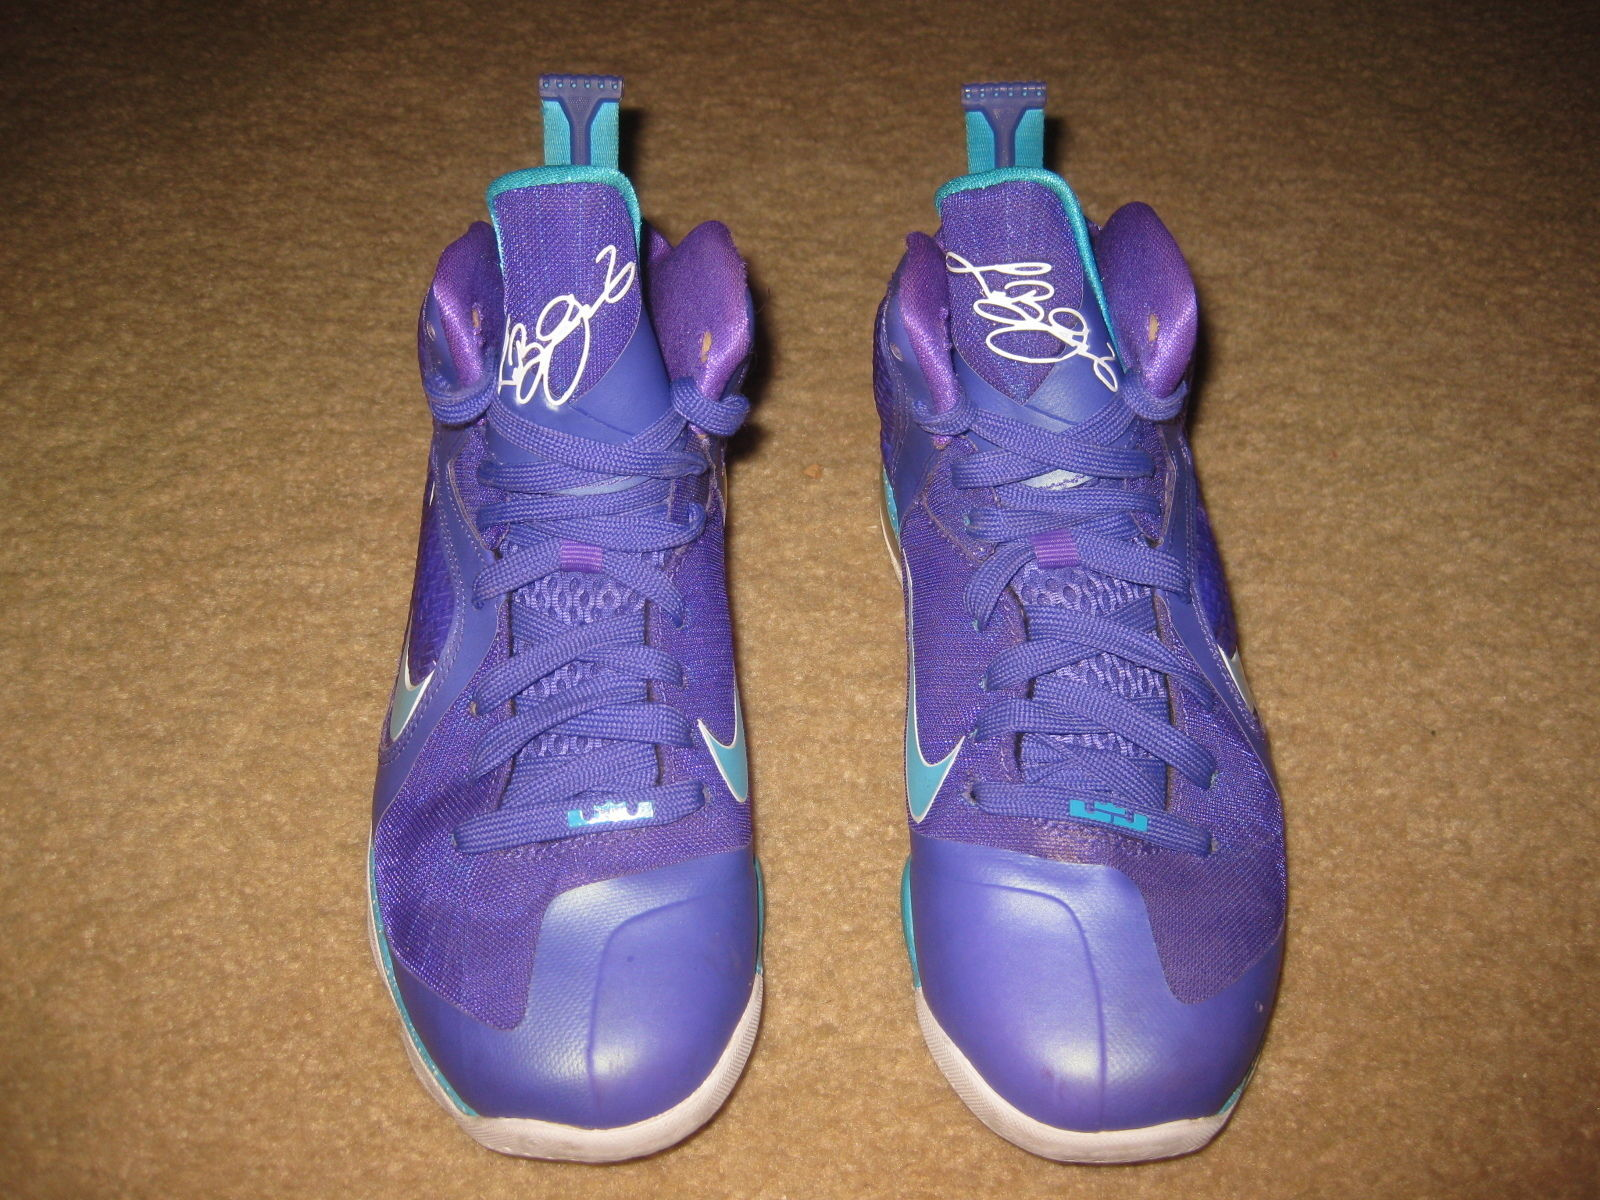 393c49cb852 NIKE LEBRON JAMES 9 GS SUMMIT LAKE HORNETS 472664-500 US SIZE 5Y KIDS NICE